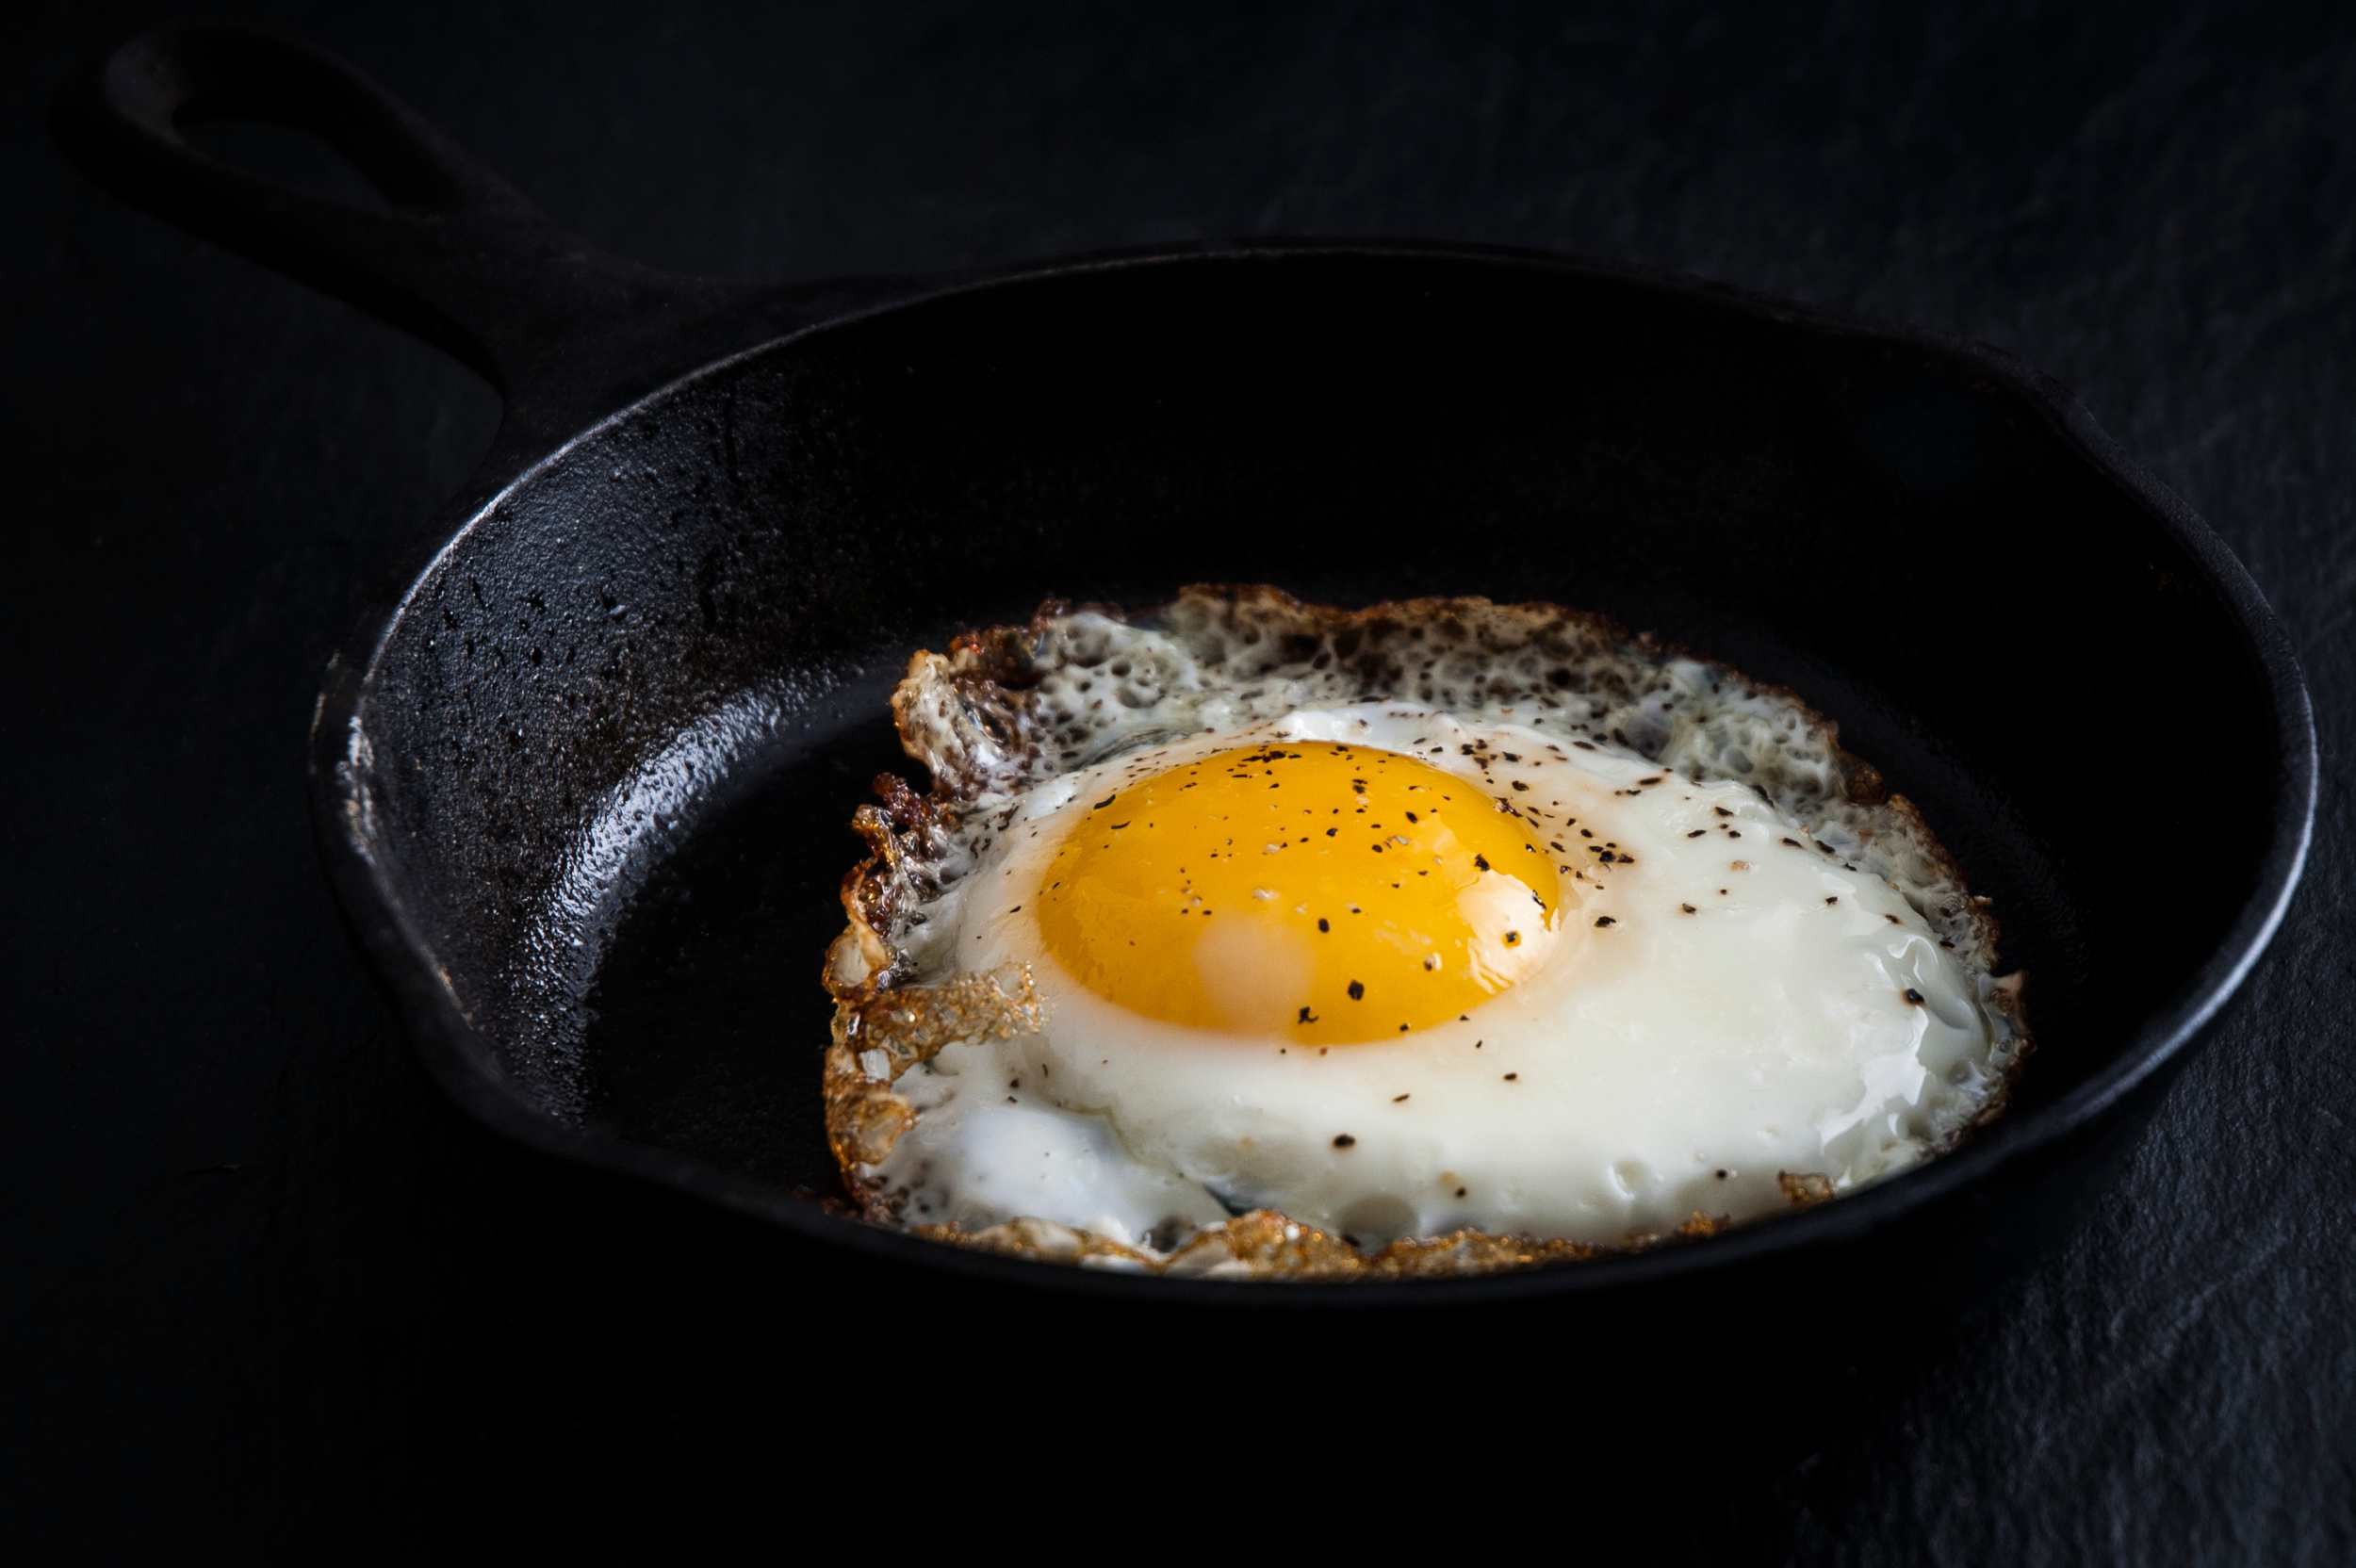 Fried egg cooking in cast iron skillet